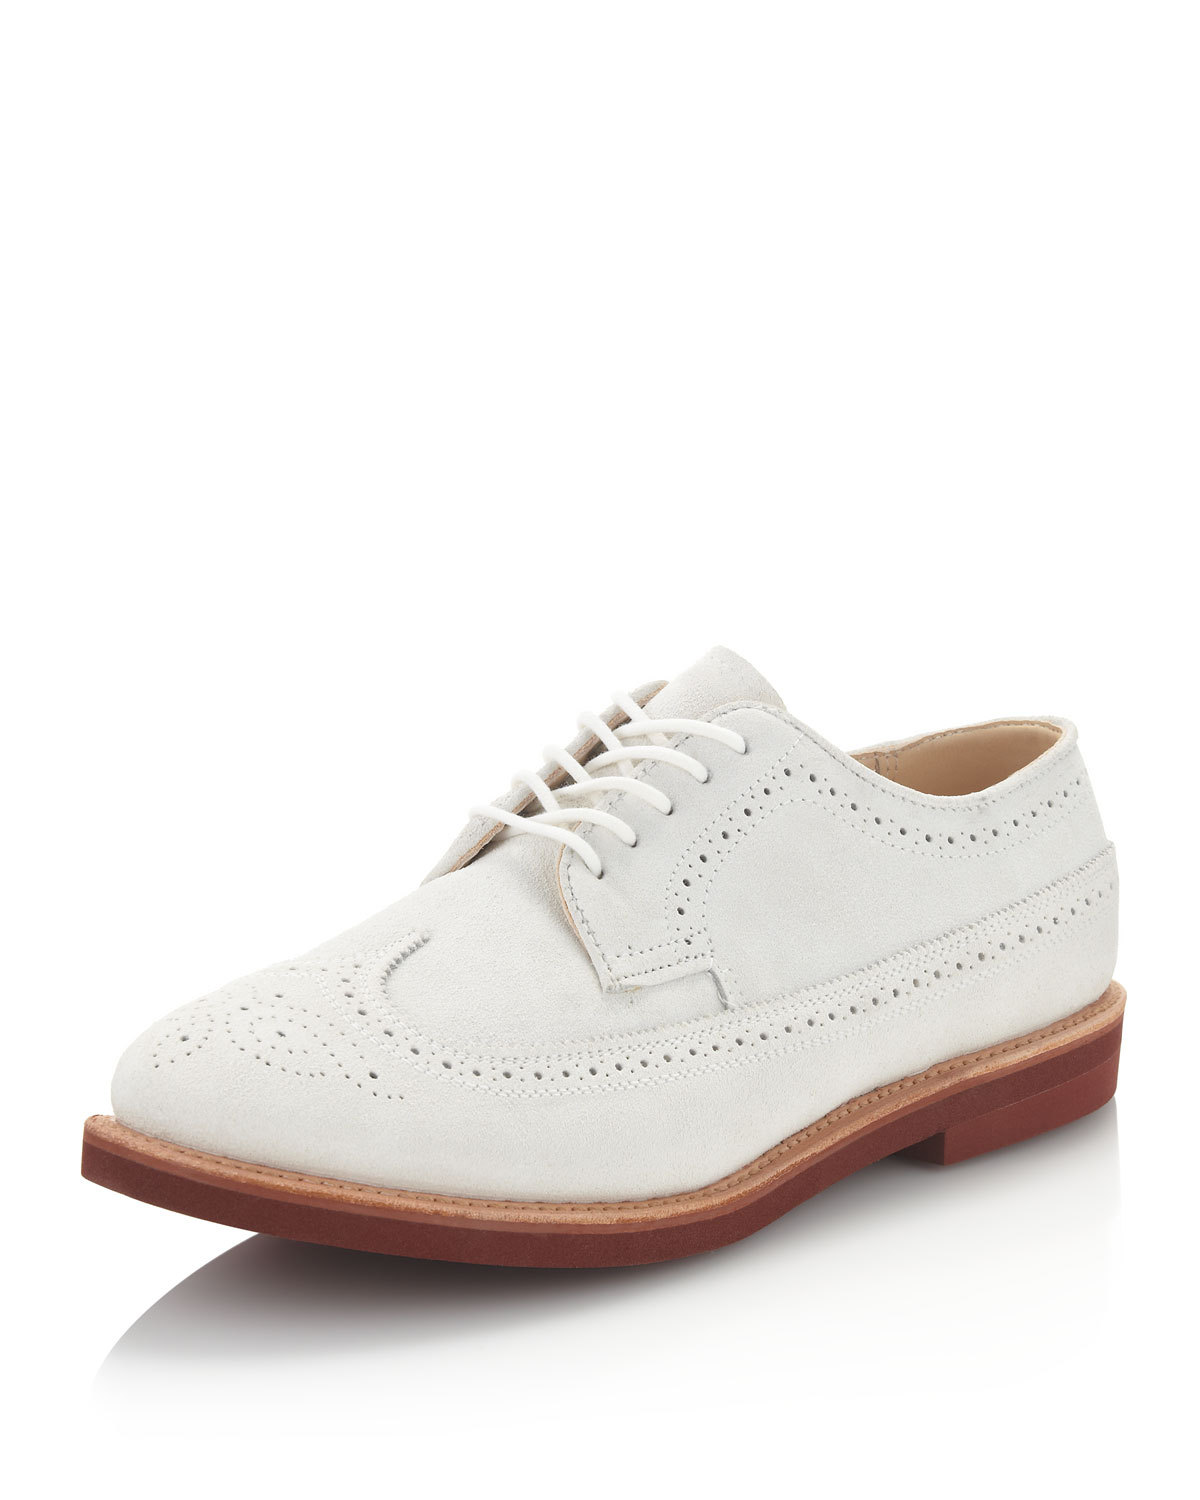 Clssic mens fashion white leather shoes, Mens wingtip white leather shoes